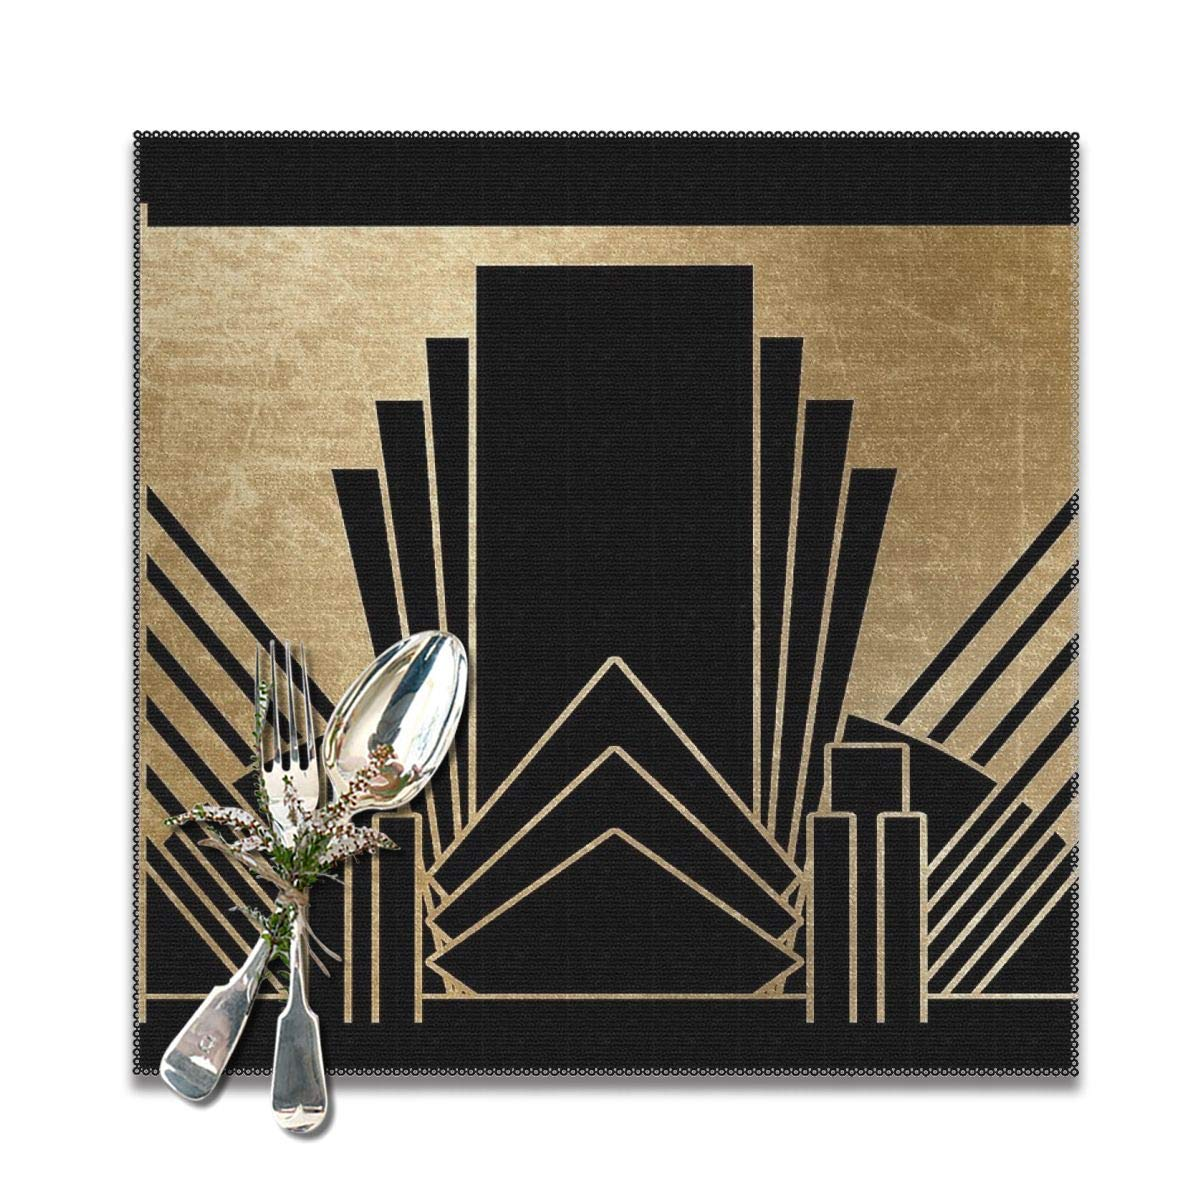 Lilyo Ltd Art Deco Design Placemats For Dining Table Washable Placemat Set Of 6 12x12 Inch Buy Online In Faroe Islands At Faroe Desertcart Com Productid 132097988